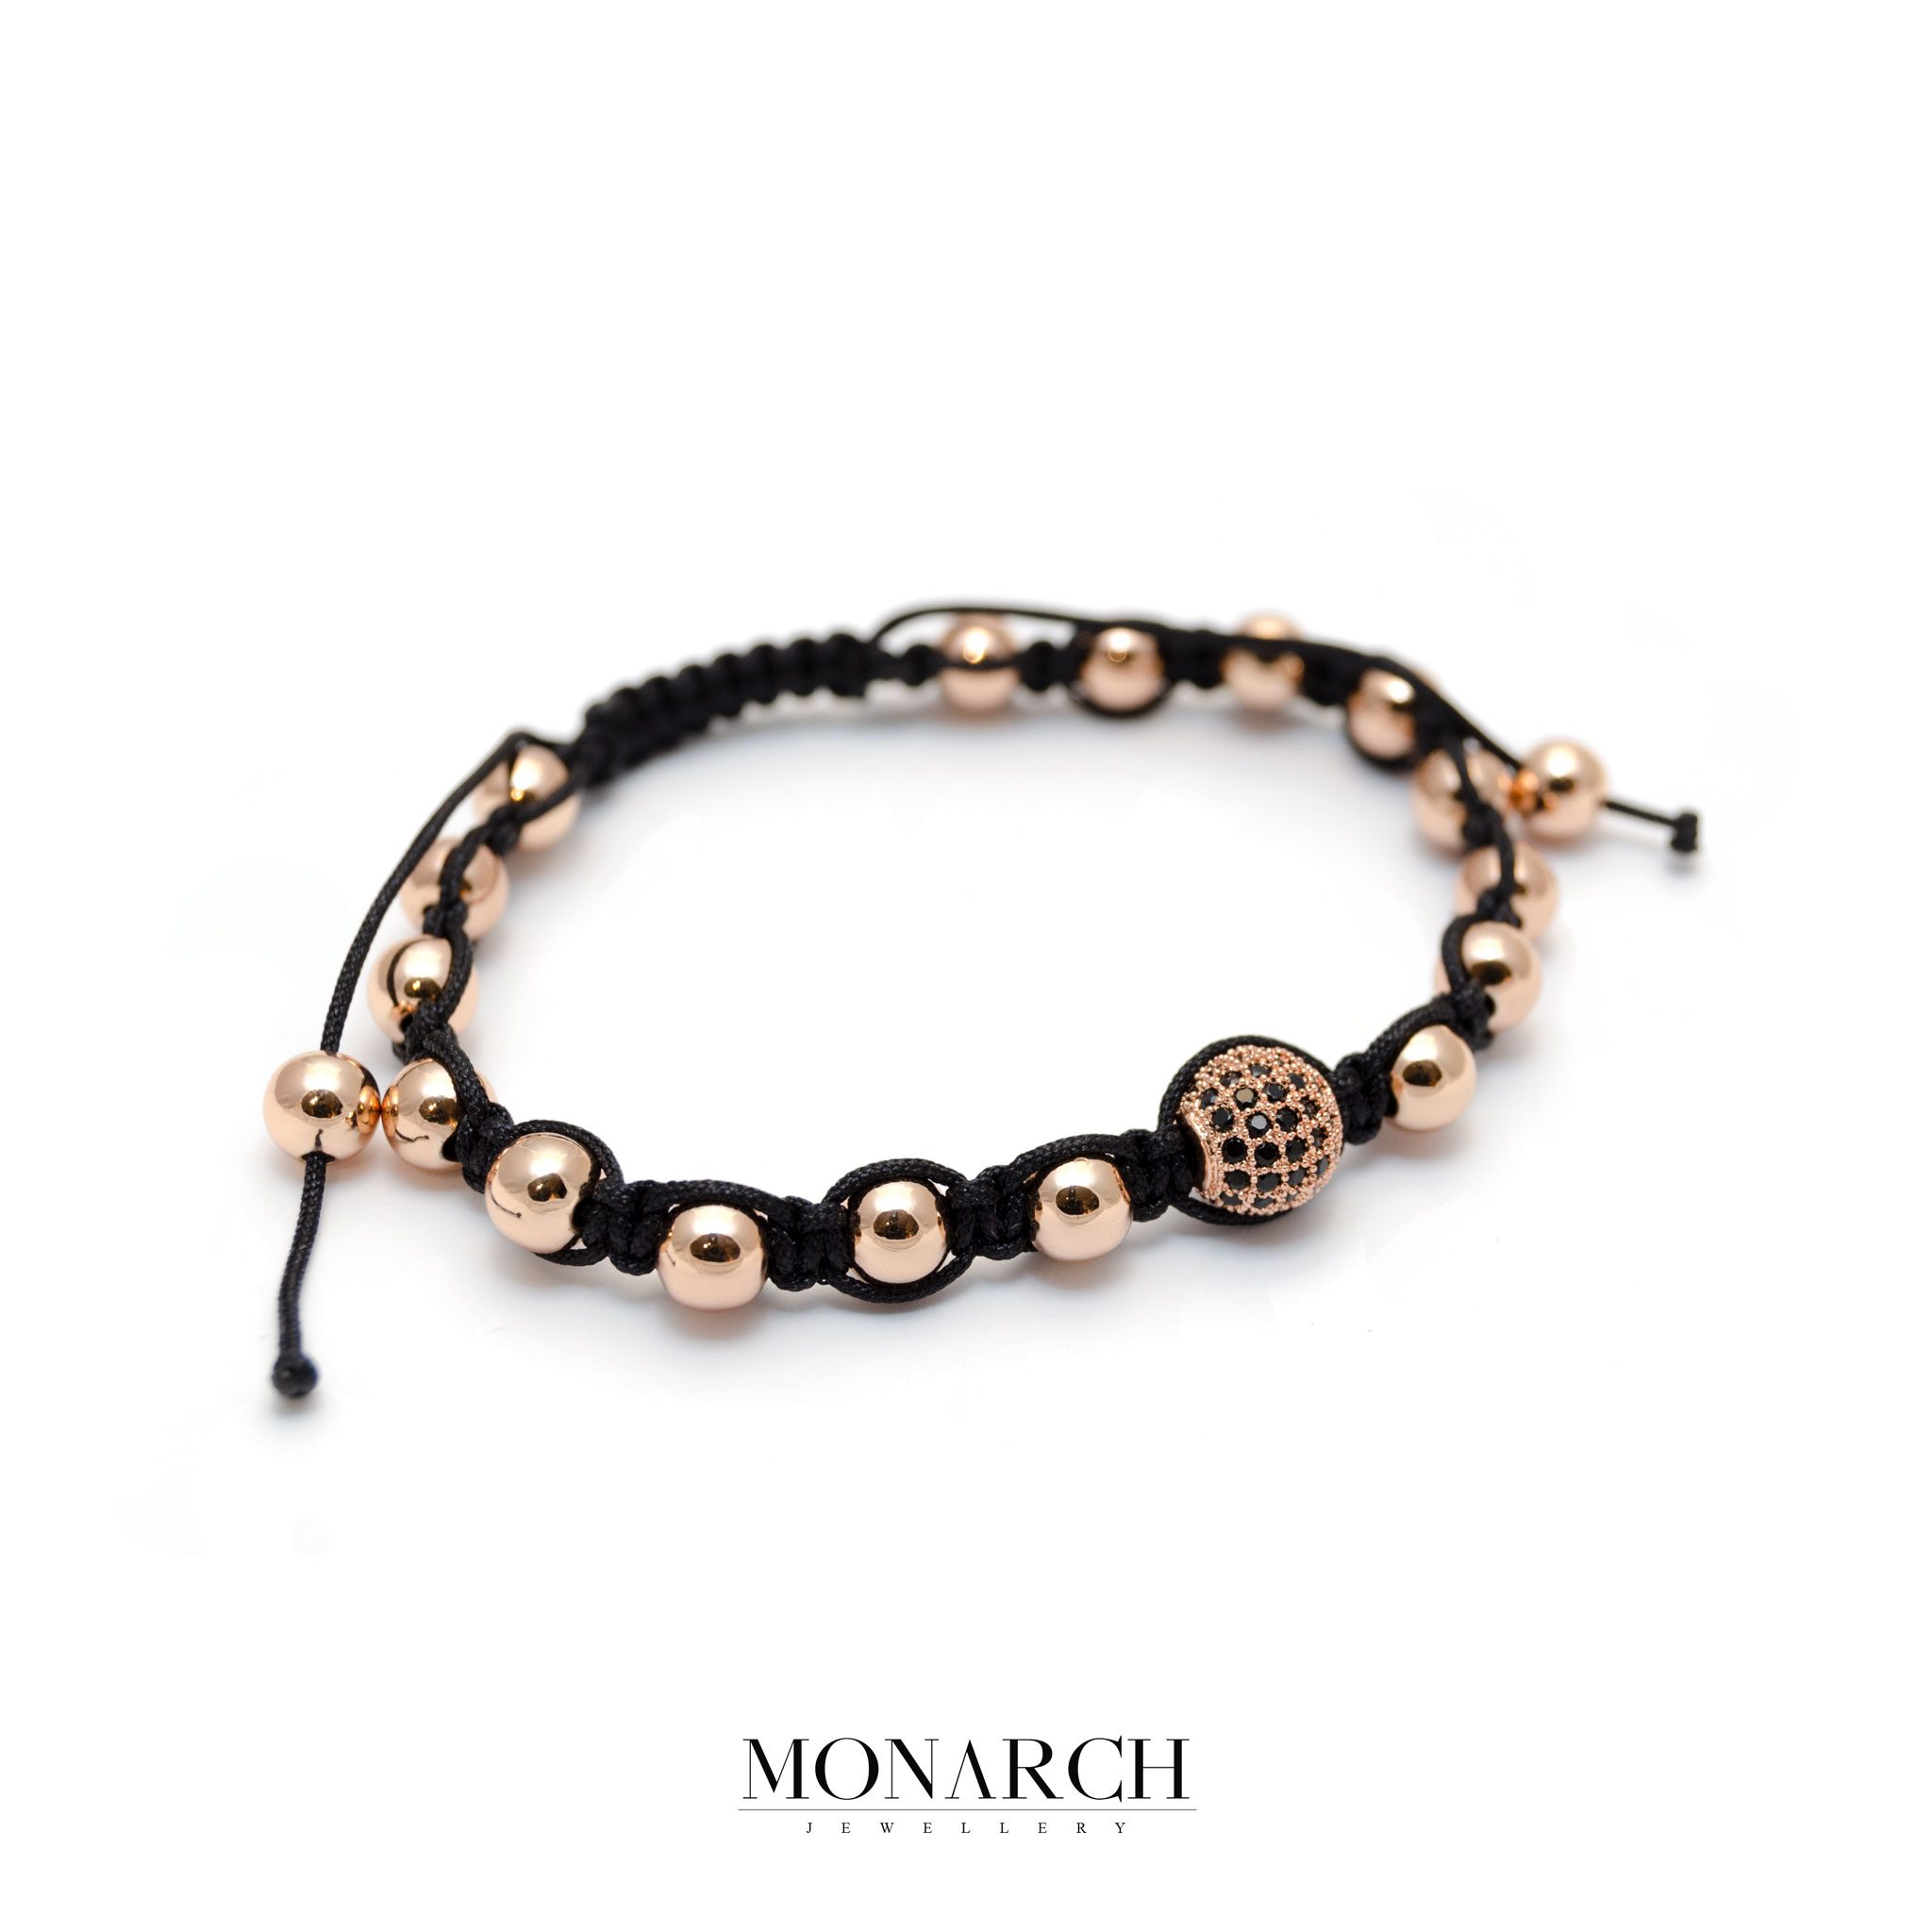 42-Monarch-Jewellery-Gold-Rose-Beads-Macrame-Bracelet-resized